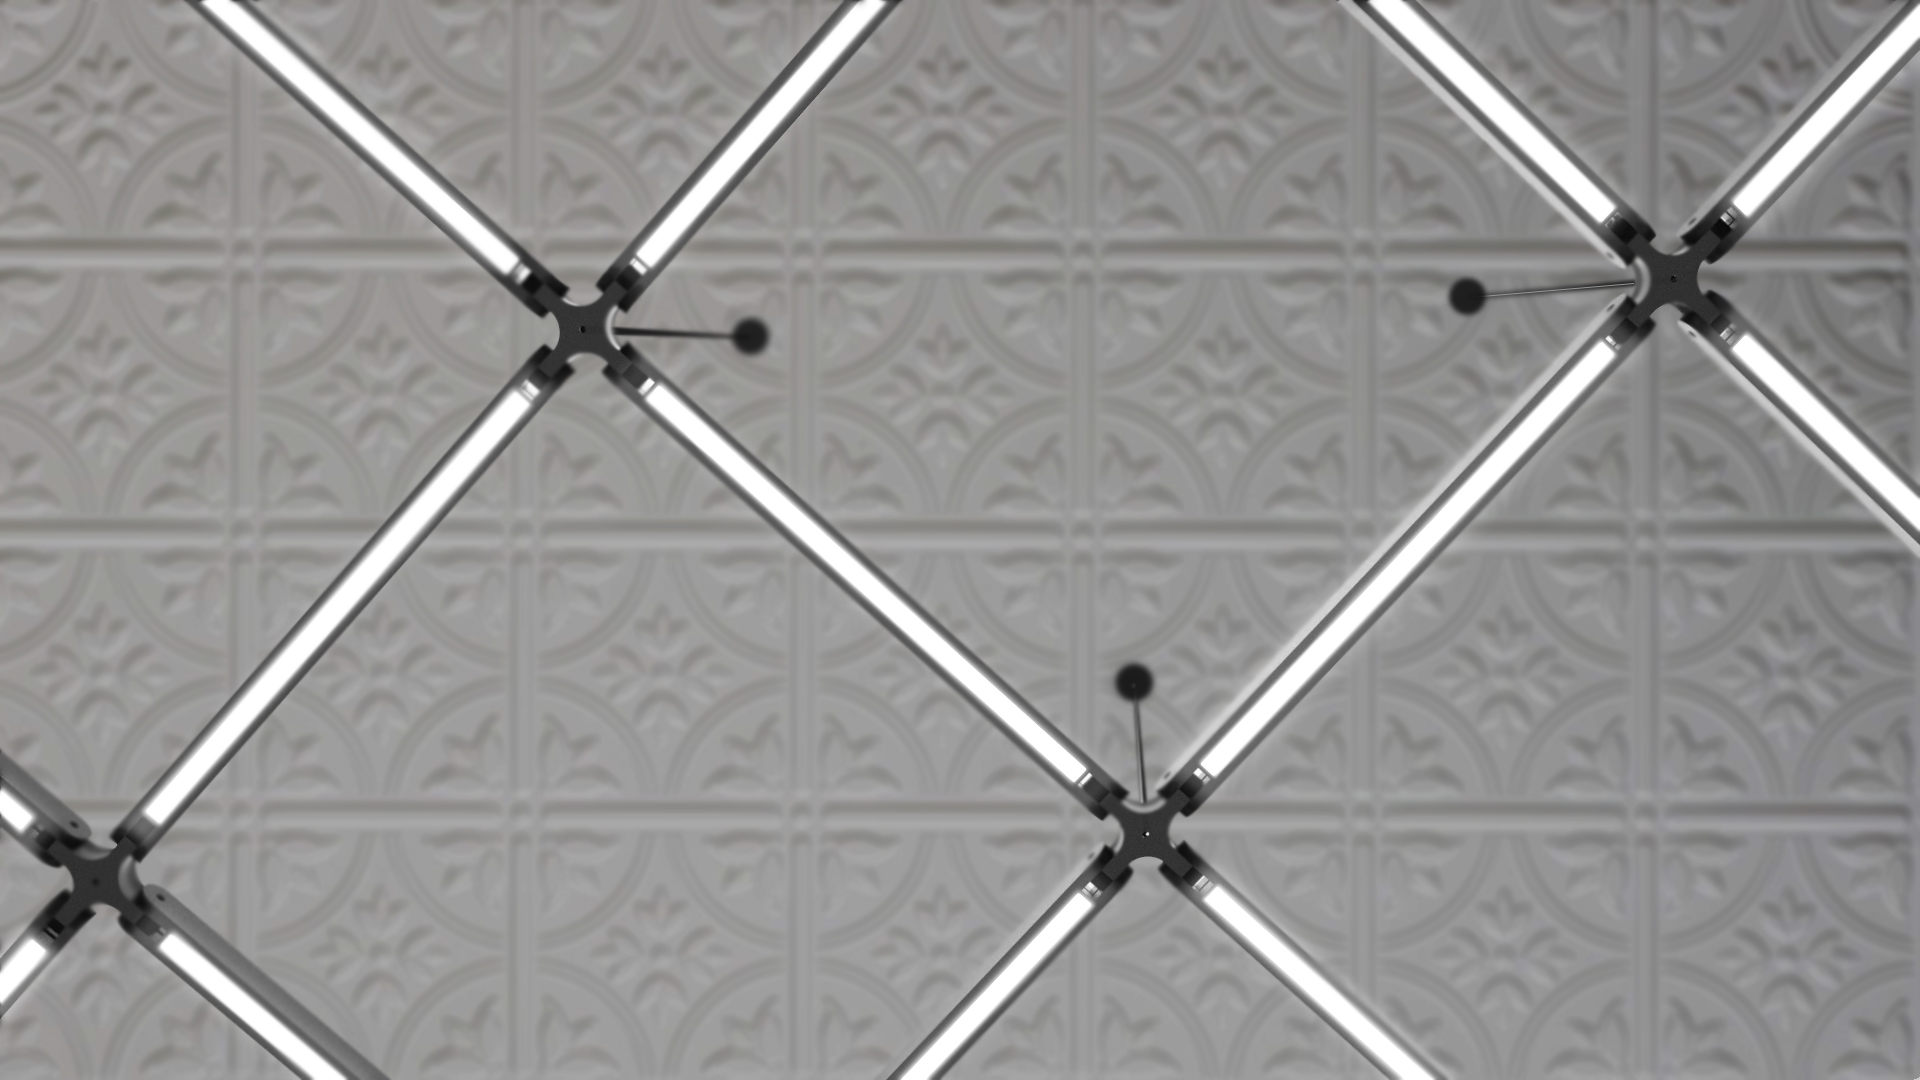 grid_looking up-_Blurred Background Recovered.jpg